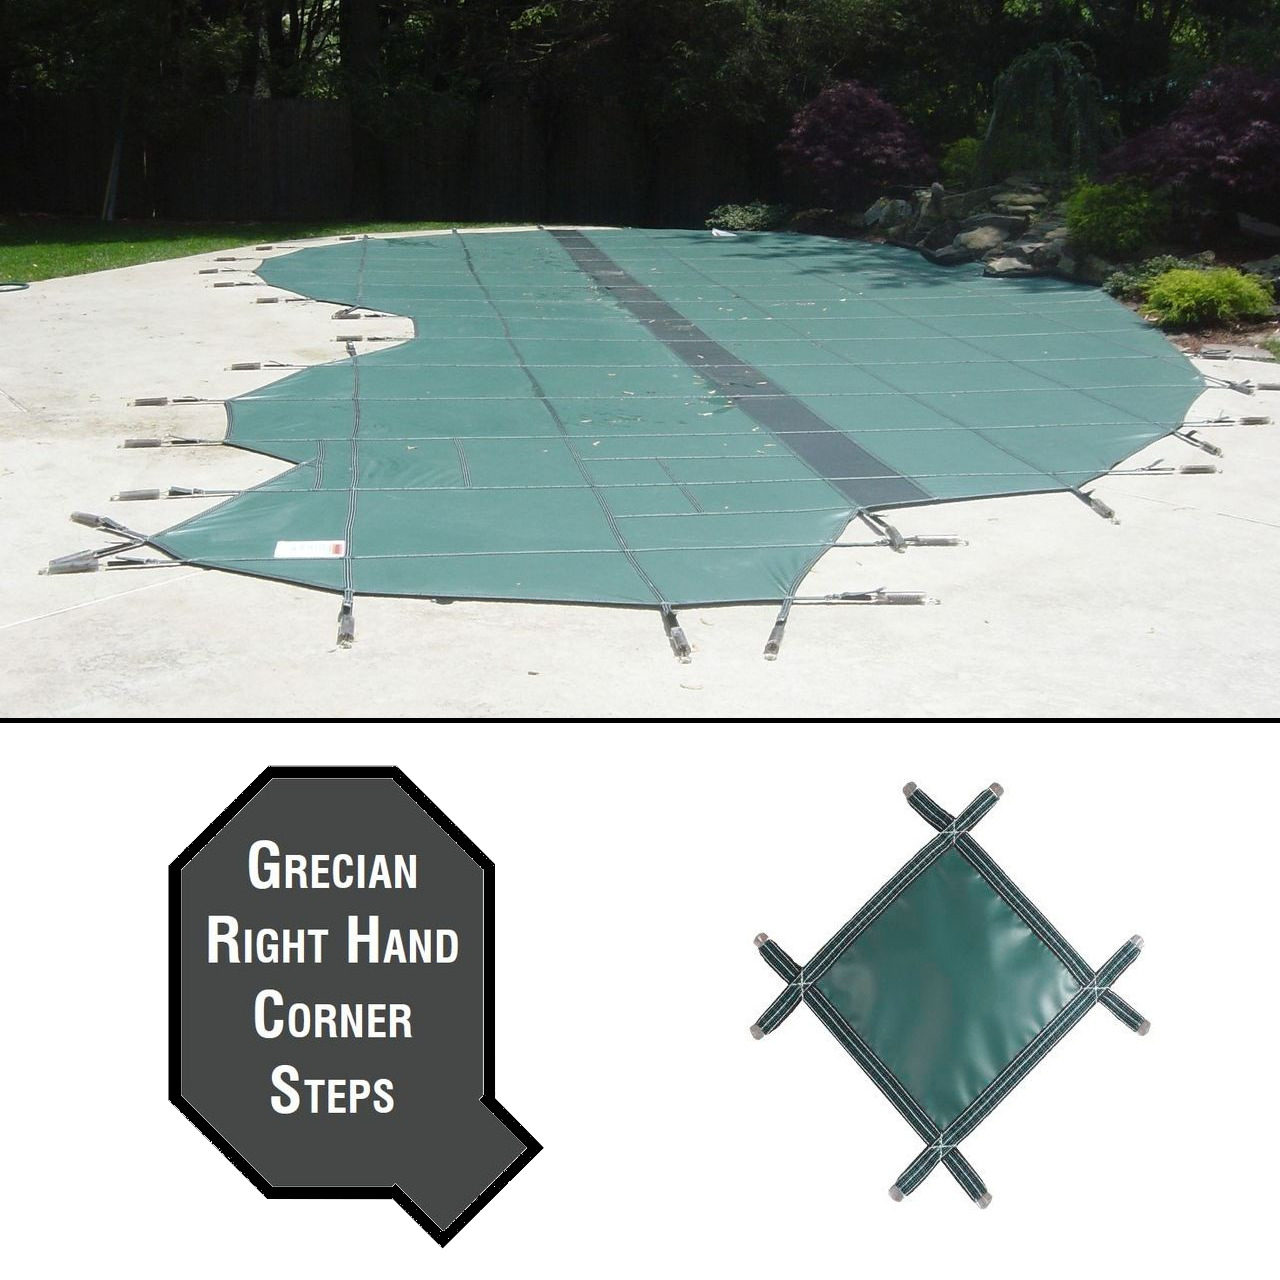 PermaGuard 23'x42' Grecian Pool Cover With 4'x11' Right Corner Steps